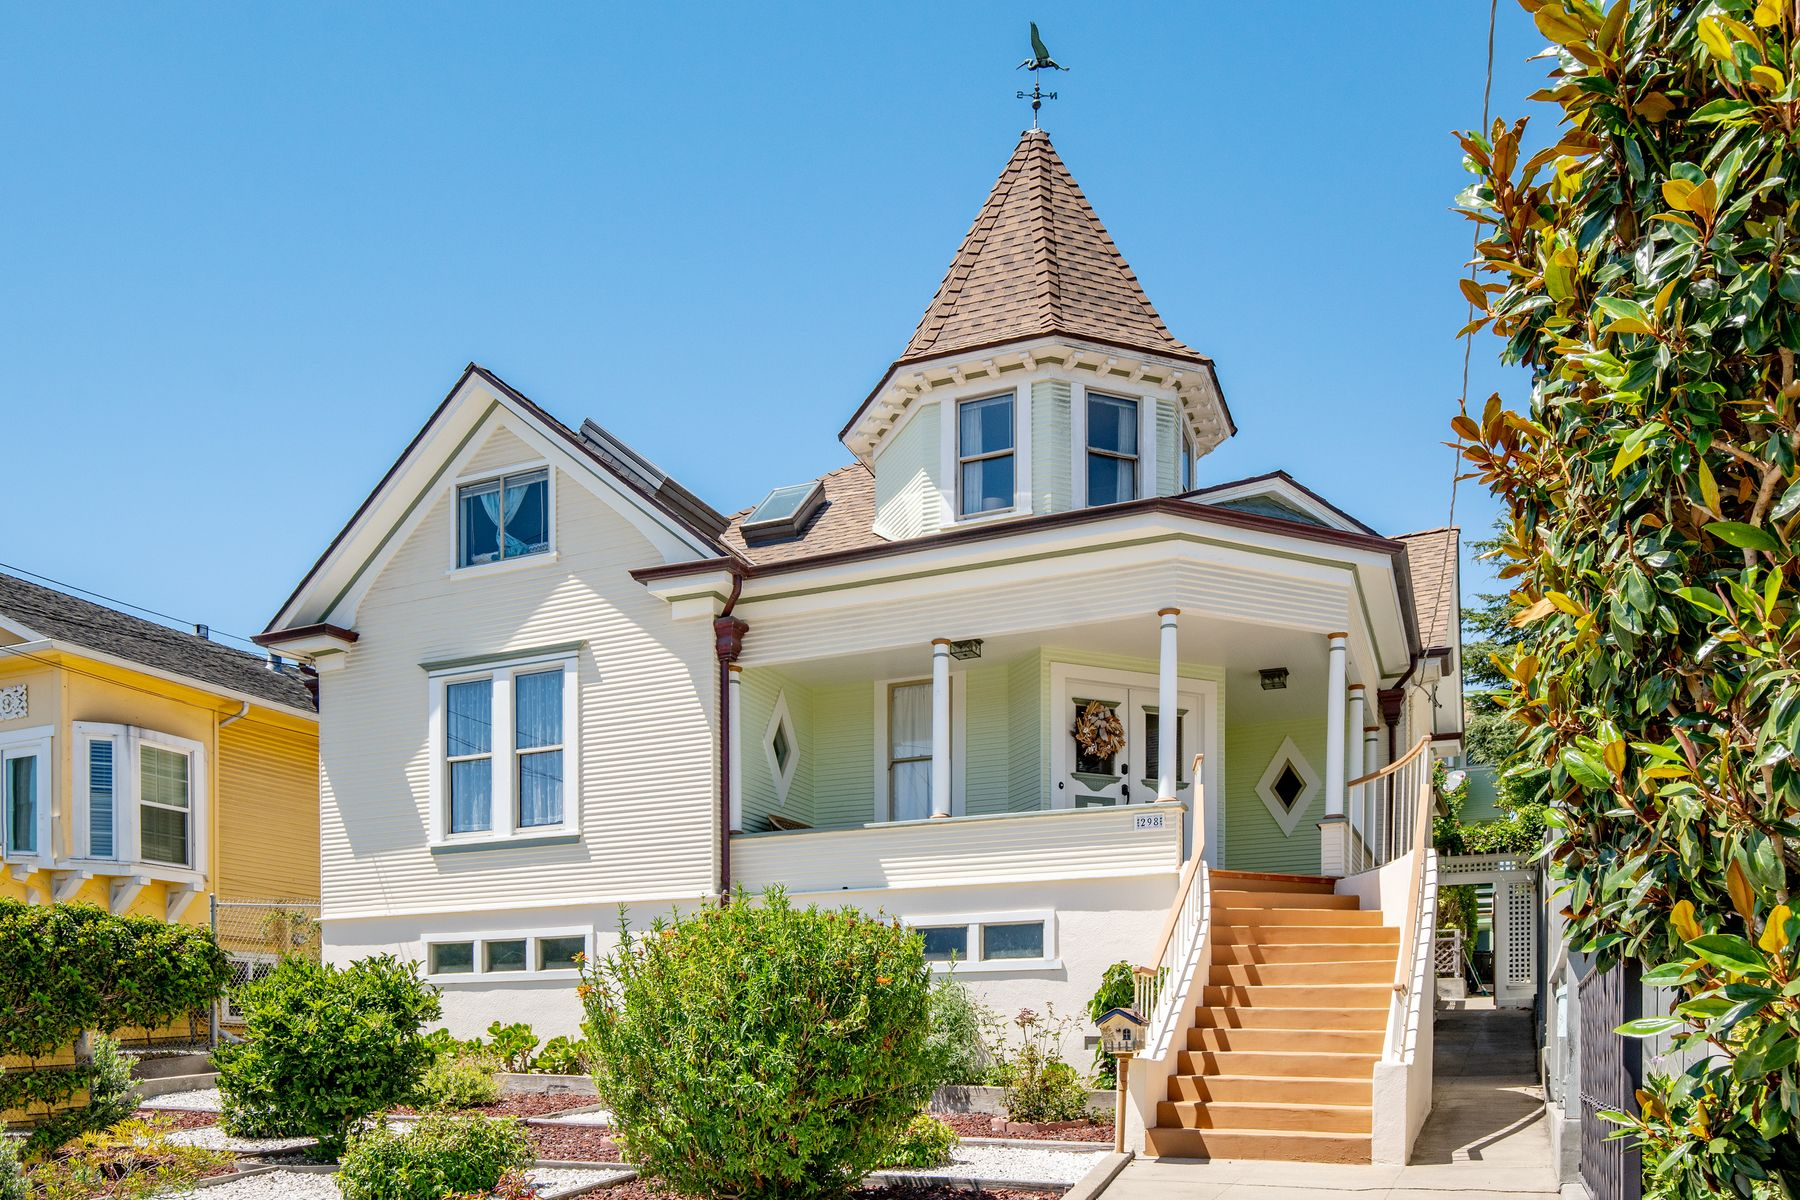 """Single Family Homes for Sale at """"Hudson House"""" in Old Town Monterey 298 Larkin Street Monterey, California 93940 United States"""